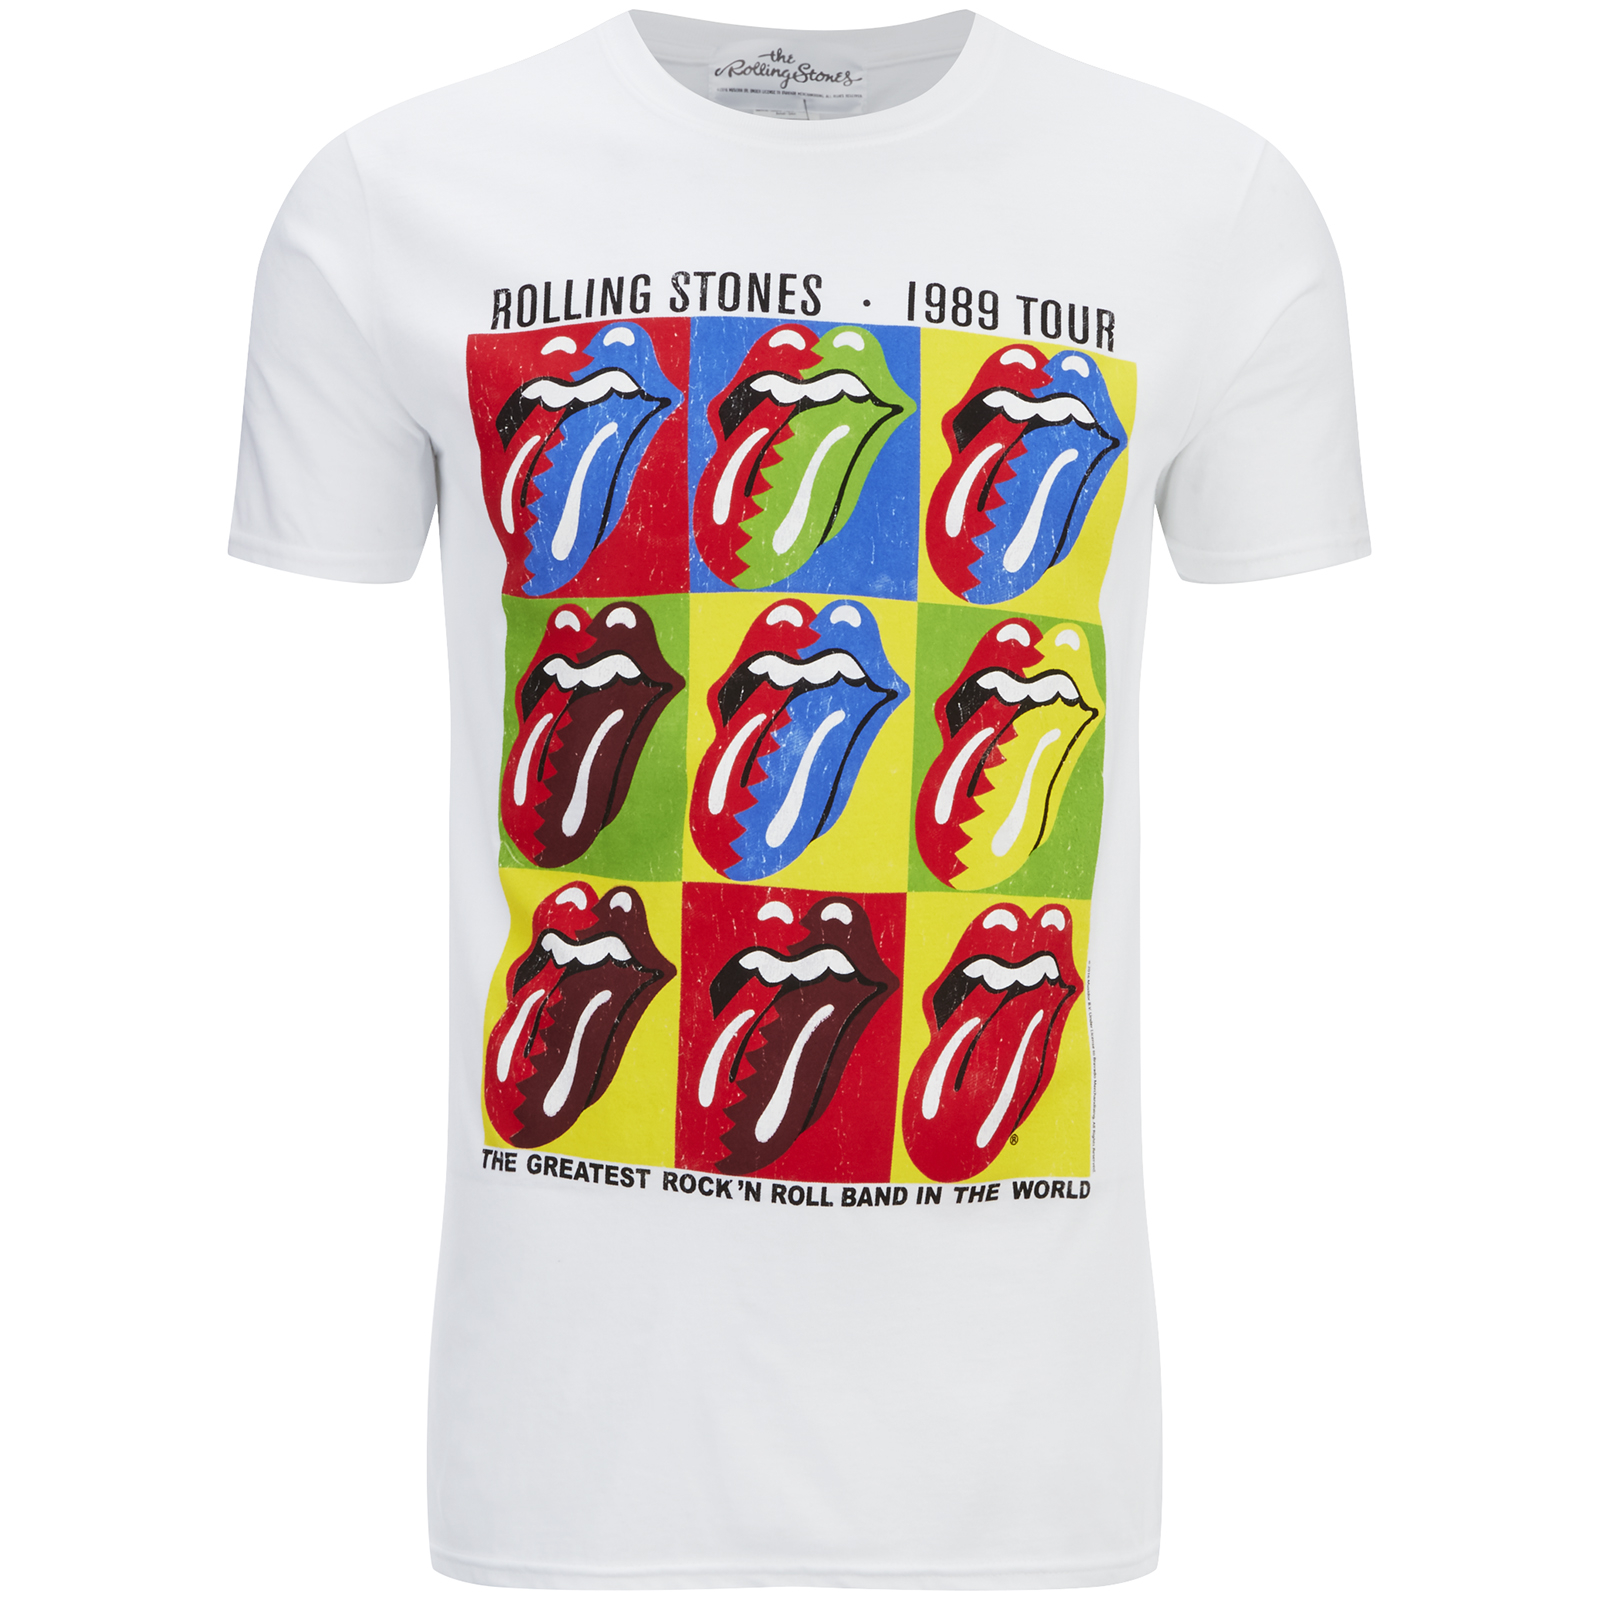 Rolling stones white shirt join